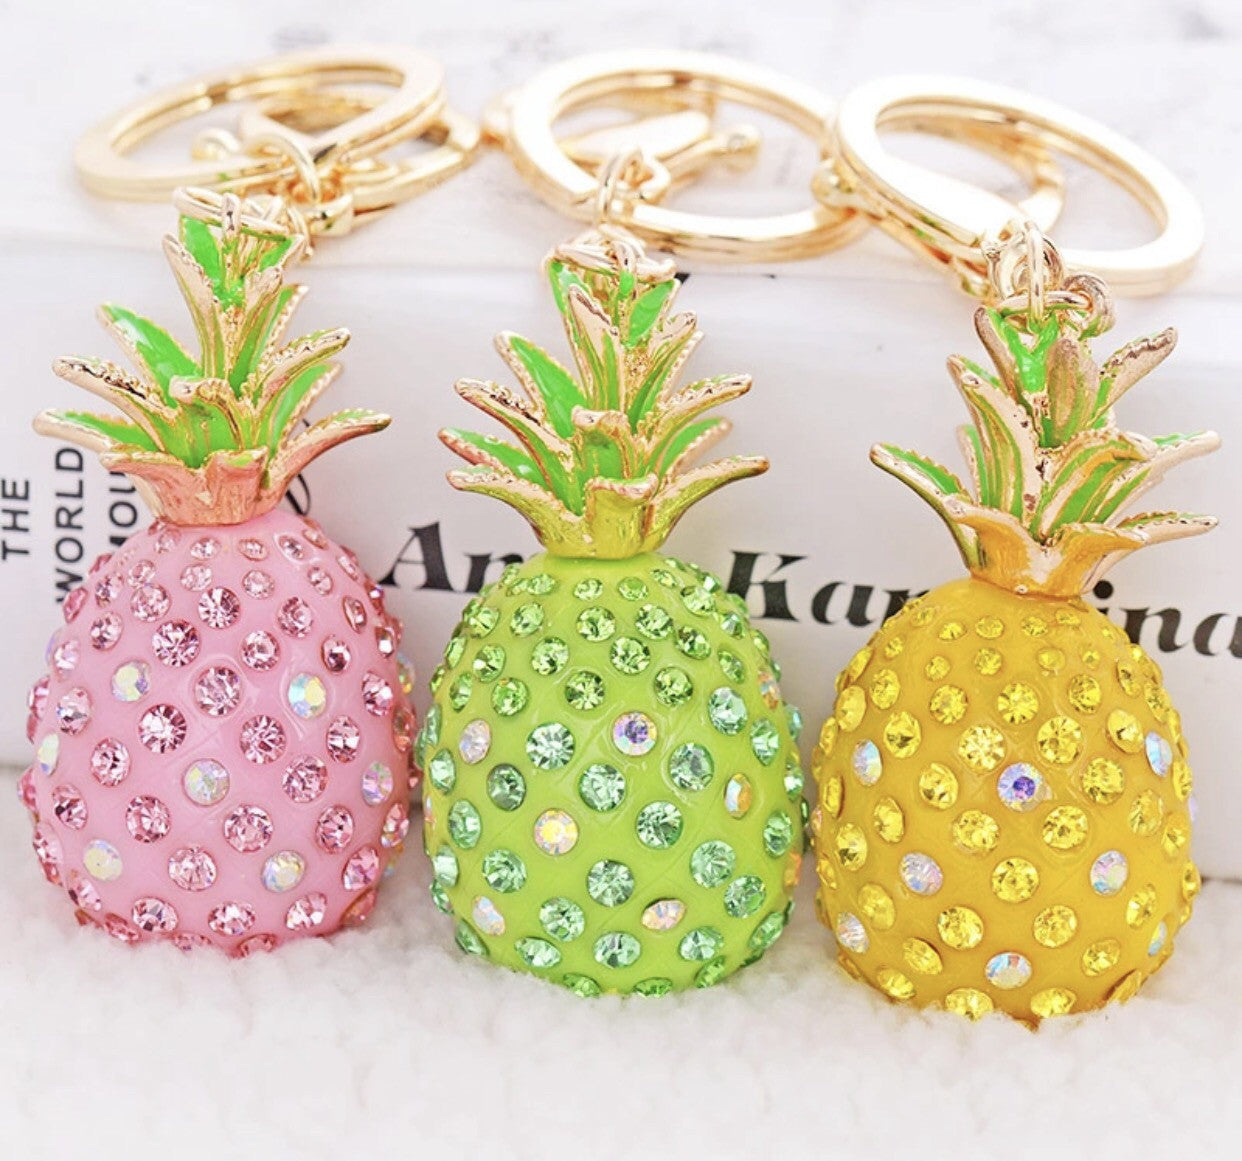 Pineapple bag charm keychain